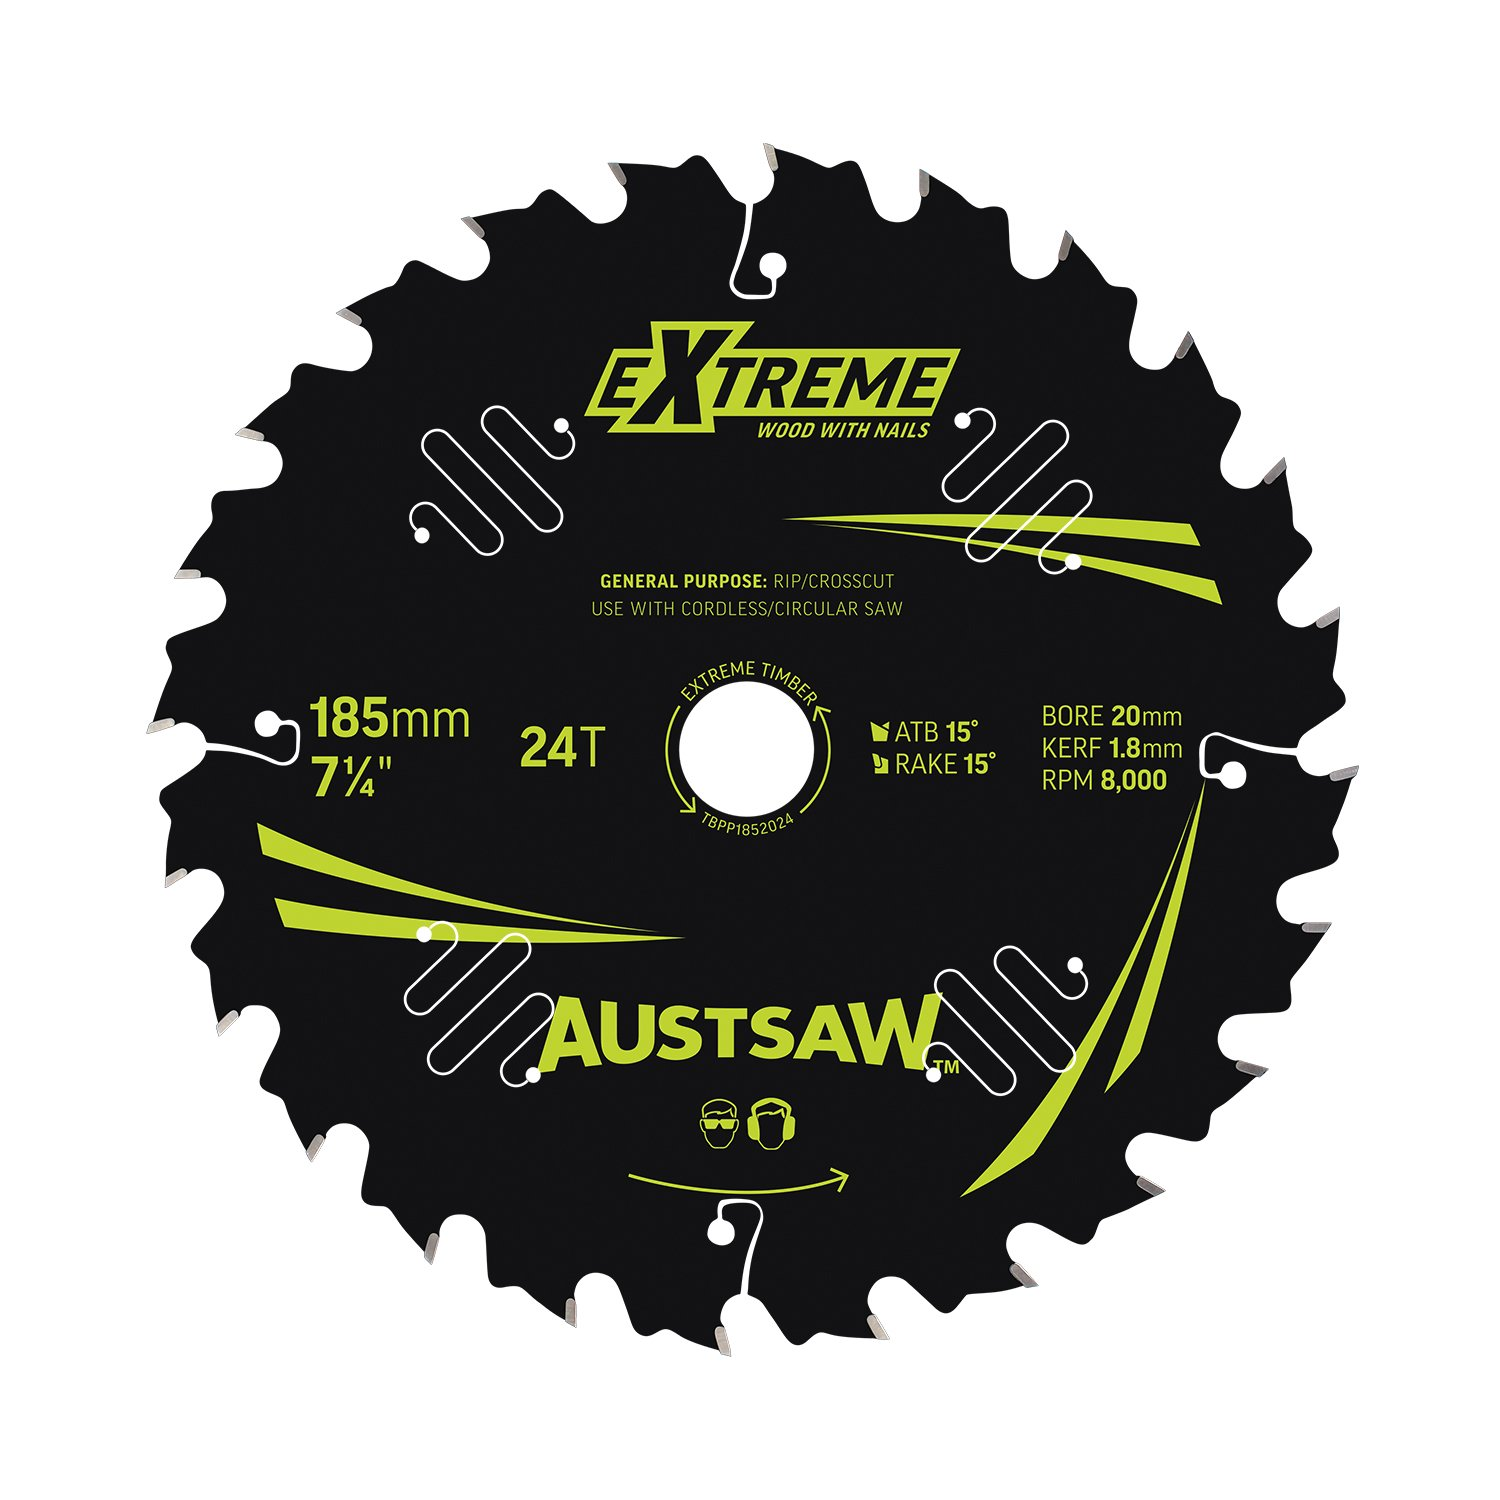 Austsaw Extreme: Wood with Nails Blade 185mm x 20/16 Bore x 24 T